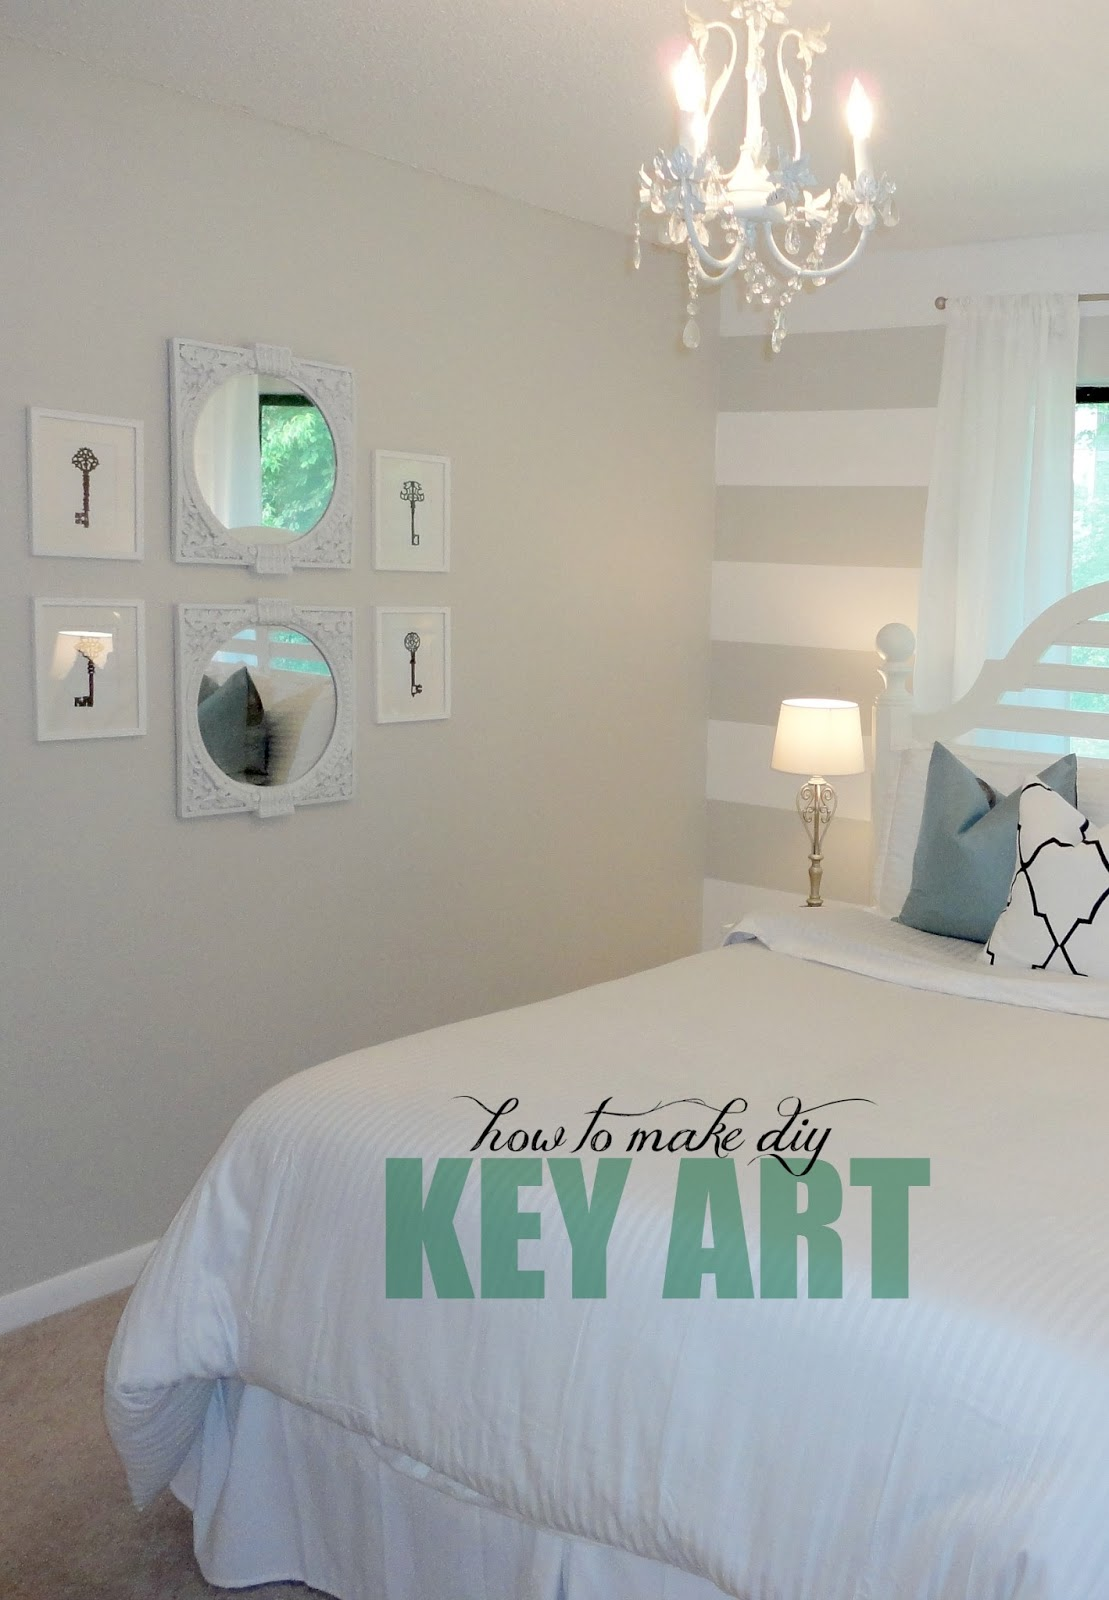 Livelovediy 10 diy art ideas easy ways to decorate your walls - Wall decoration ideas for bedroom ...